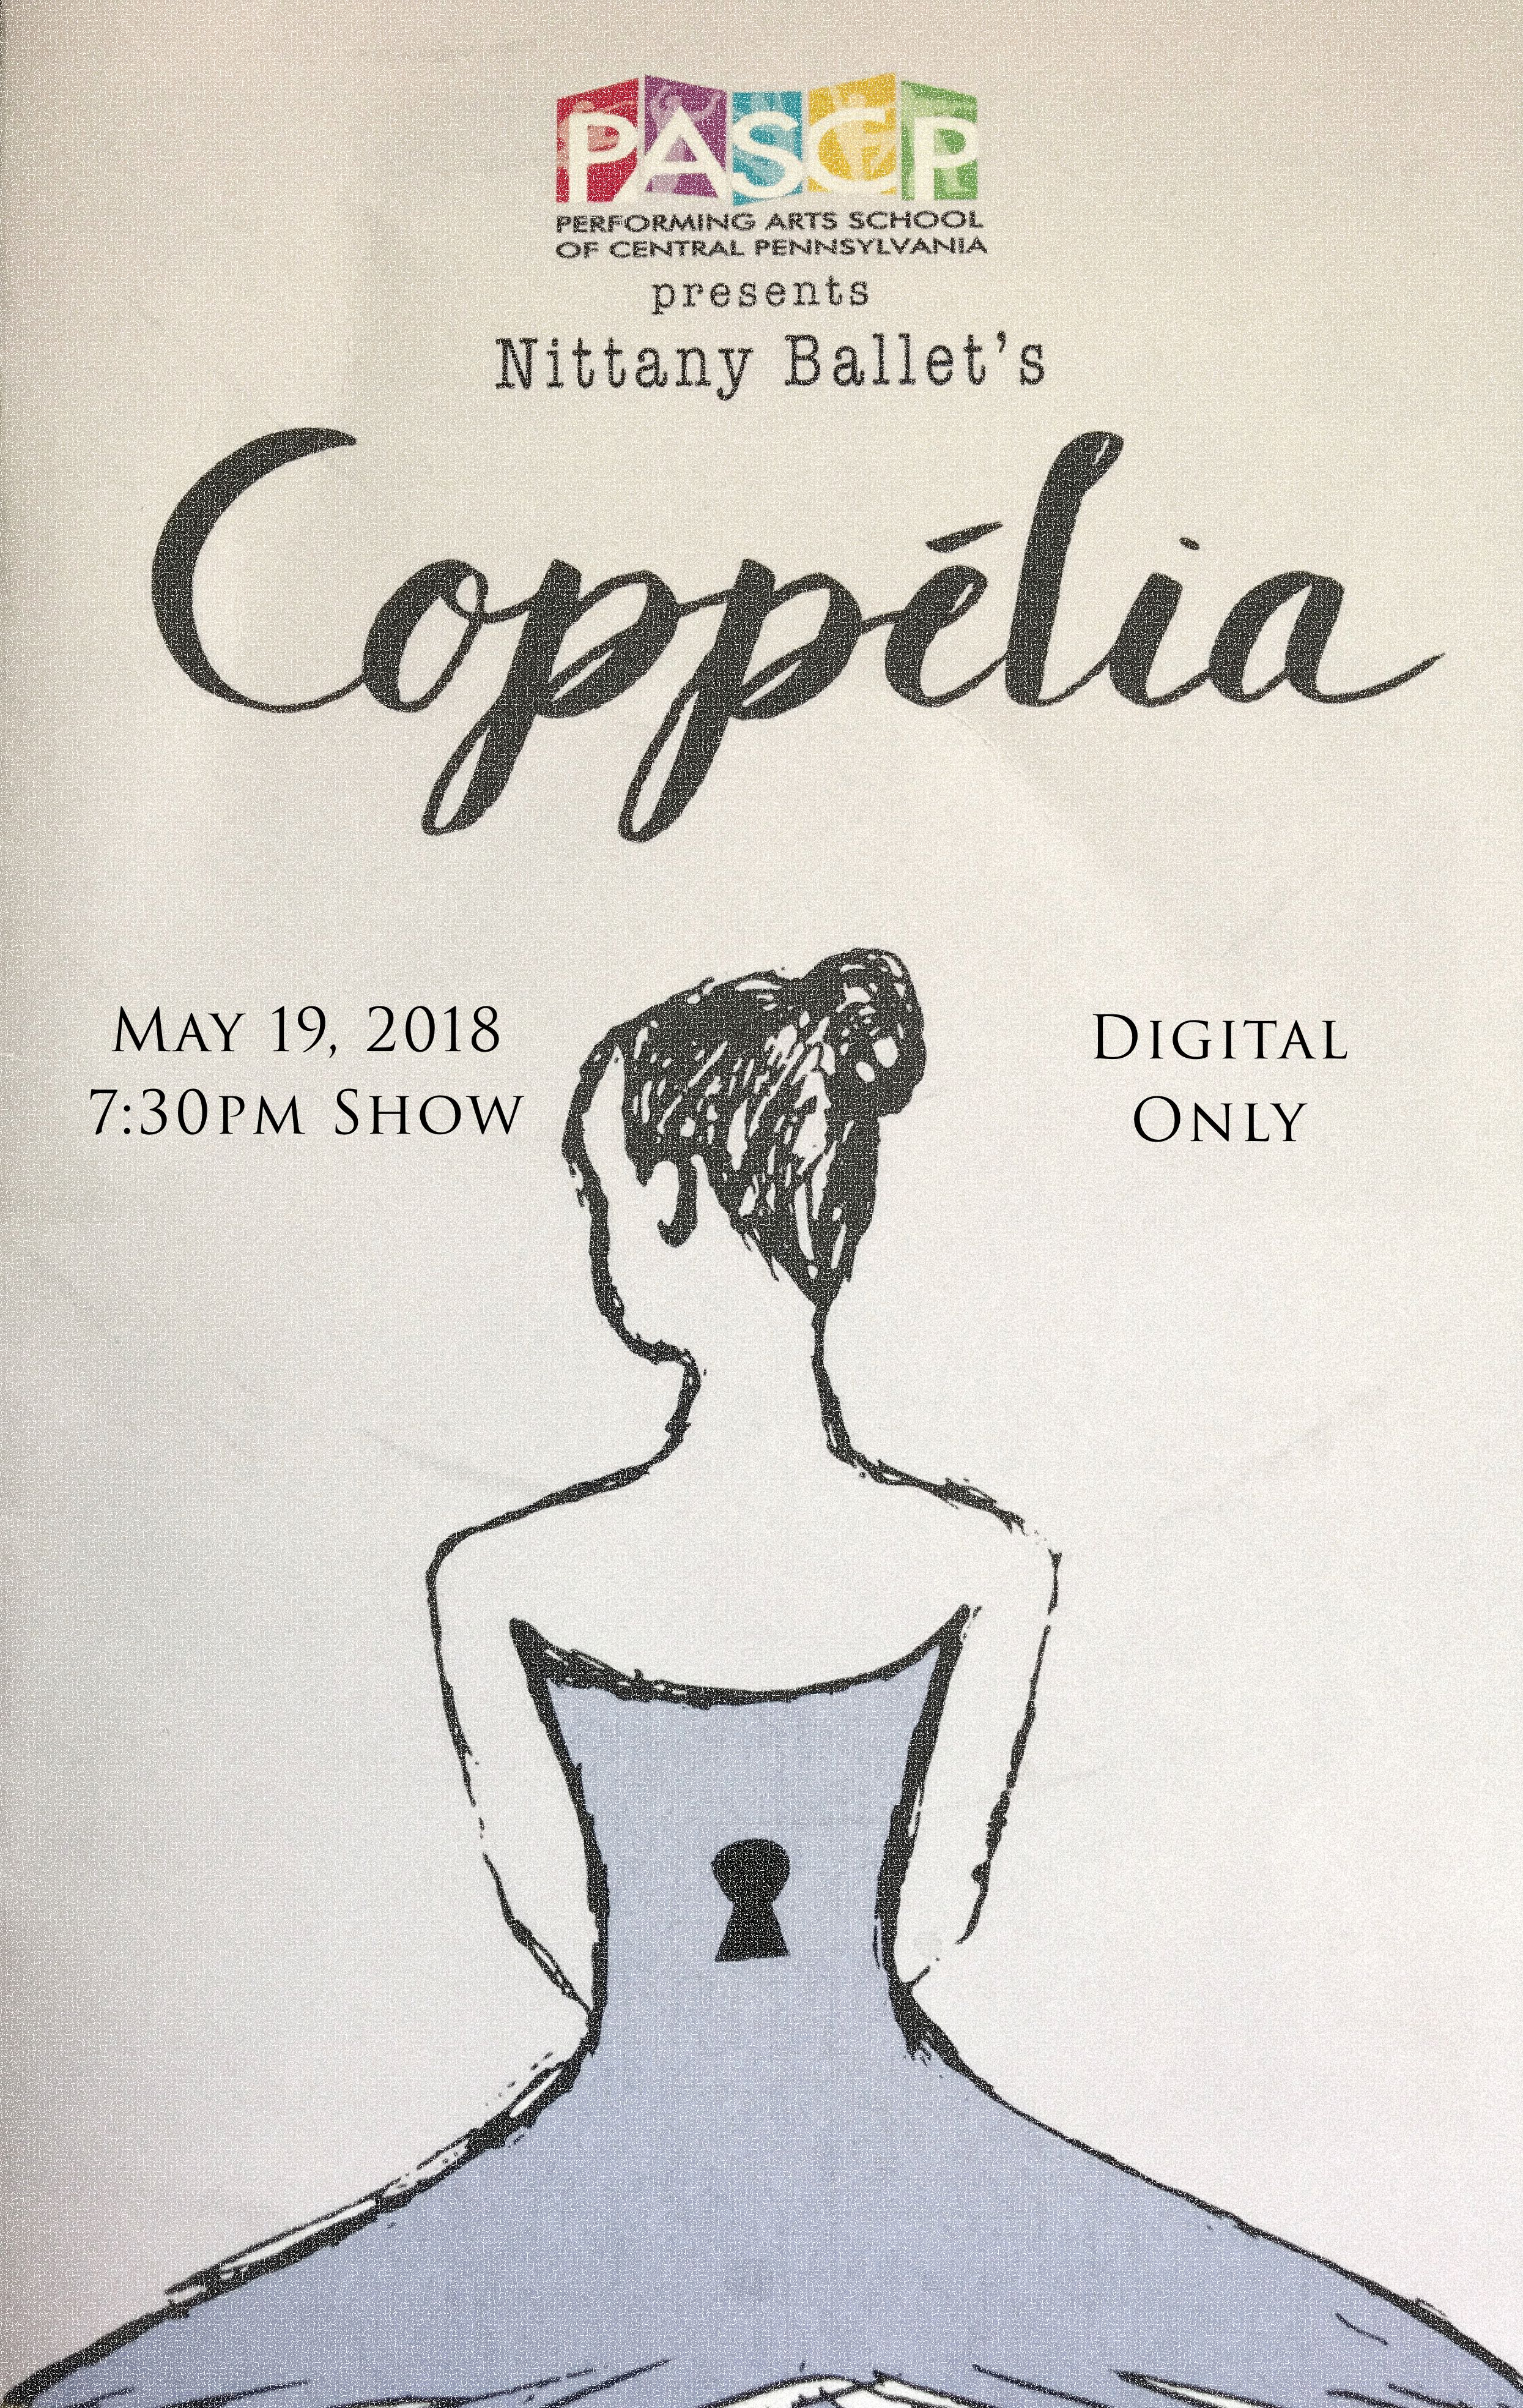 7:30pm Performance, Digital Only